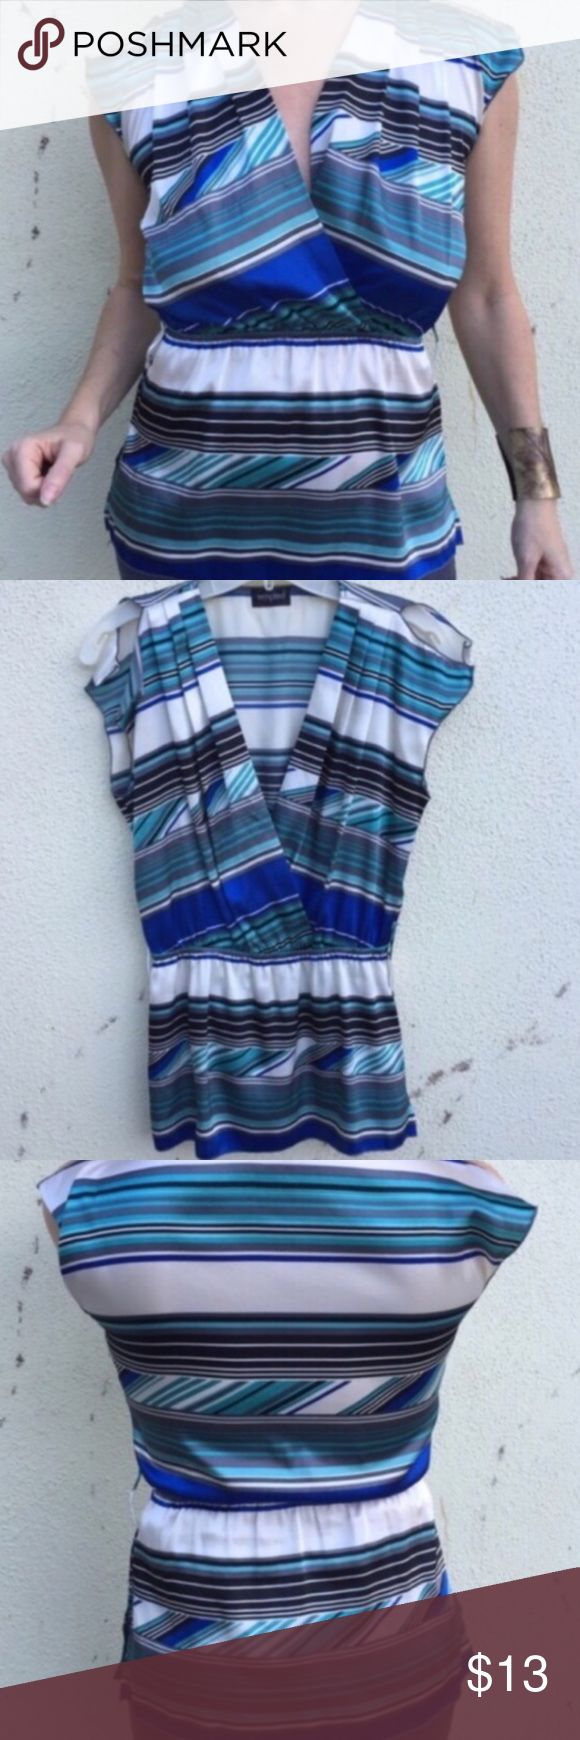 striped blouse TOP blouse peplum faux wrap M white Satiny top with stripes, faux wrap neck and elastic waist creating almost a peplum silhouette. Great with straight skirts! Polyester. Fits medium. (F14) Urban Outfitters Tops Blouses